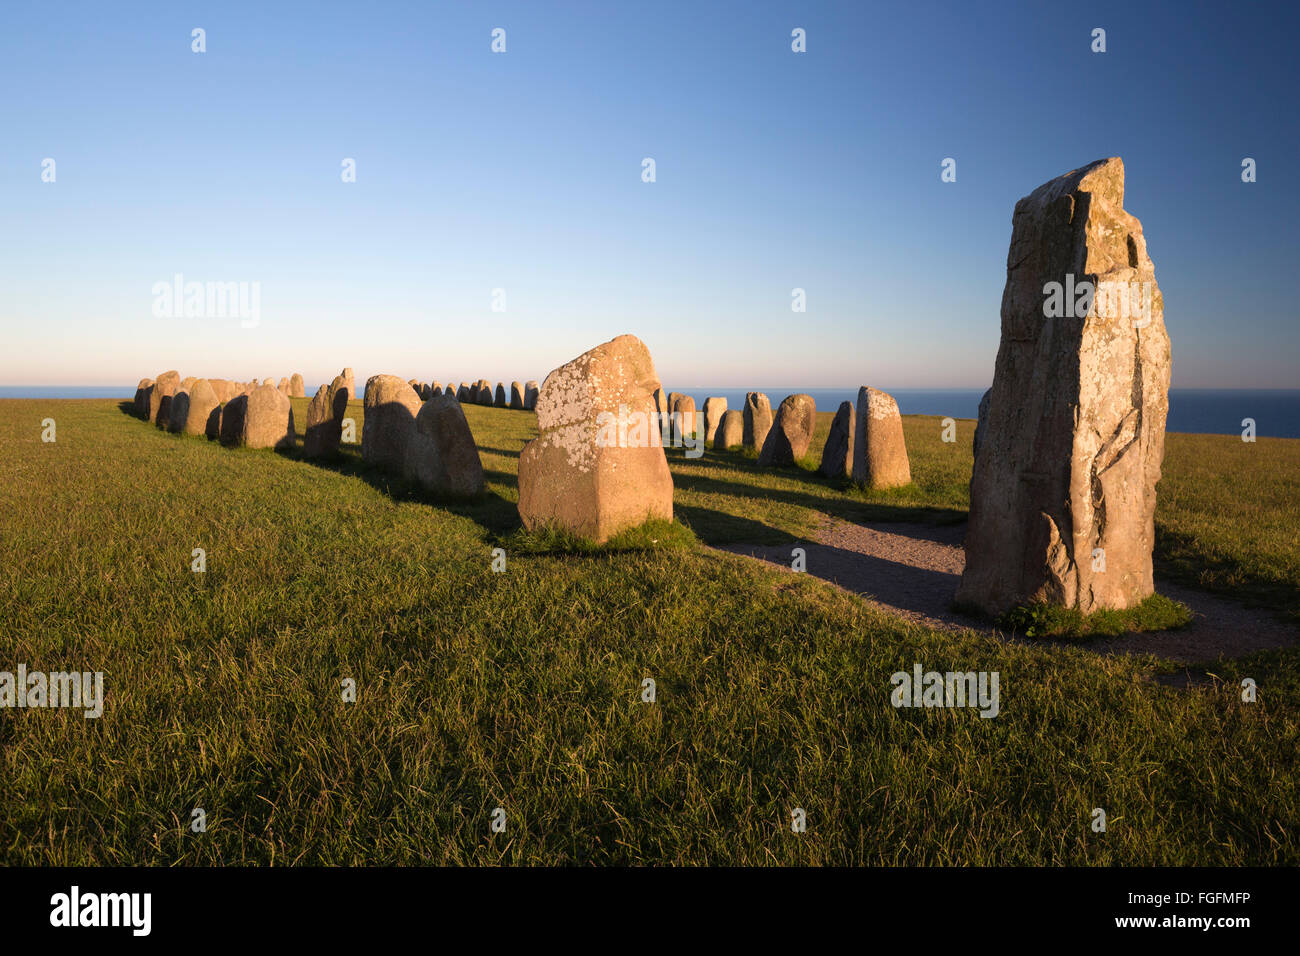 Boat shaped standing stones of Ales Stenar, Kaseberga, Skane, South Sweden, Sweden, Scandinavia, Europe - Stock Image